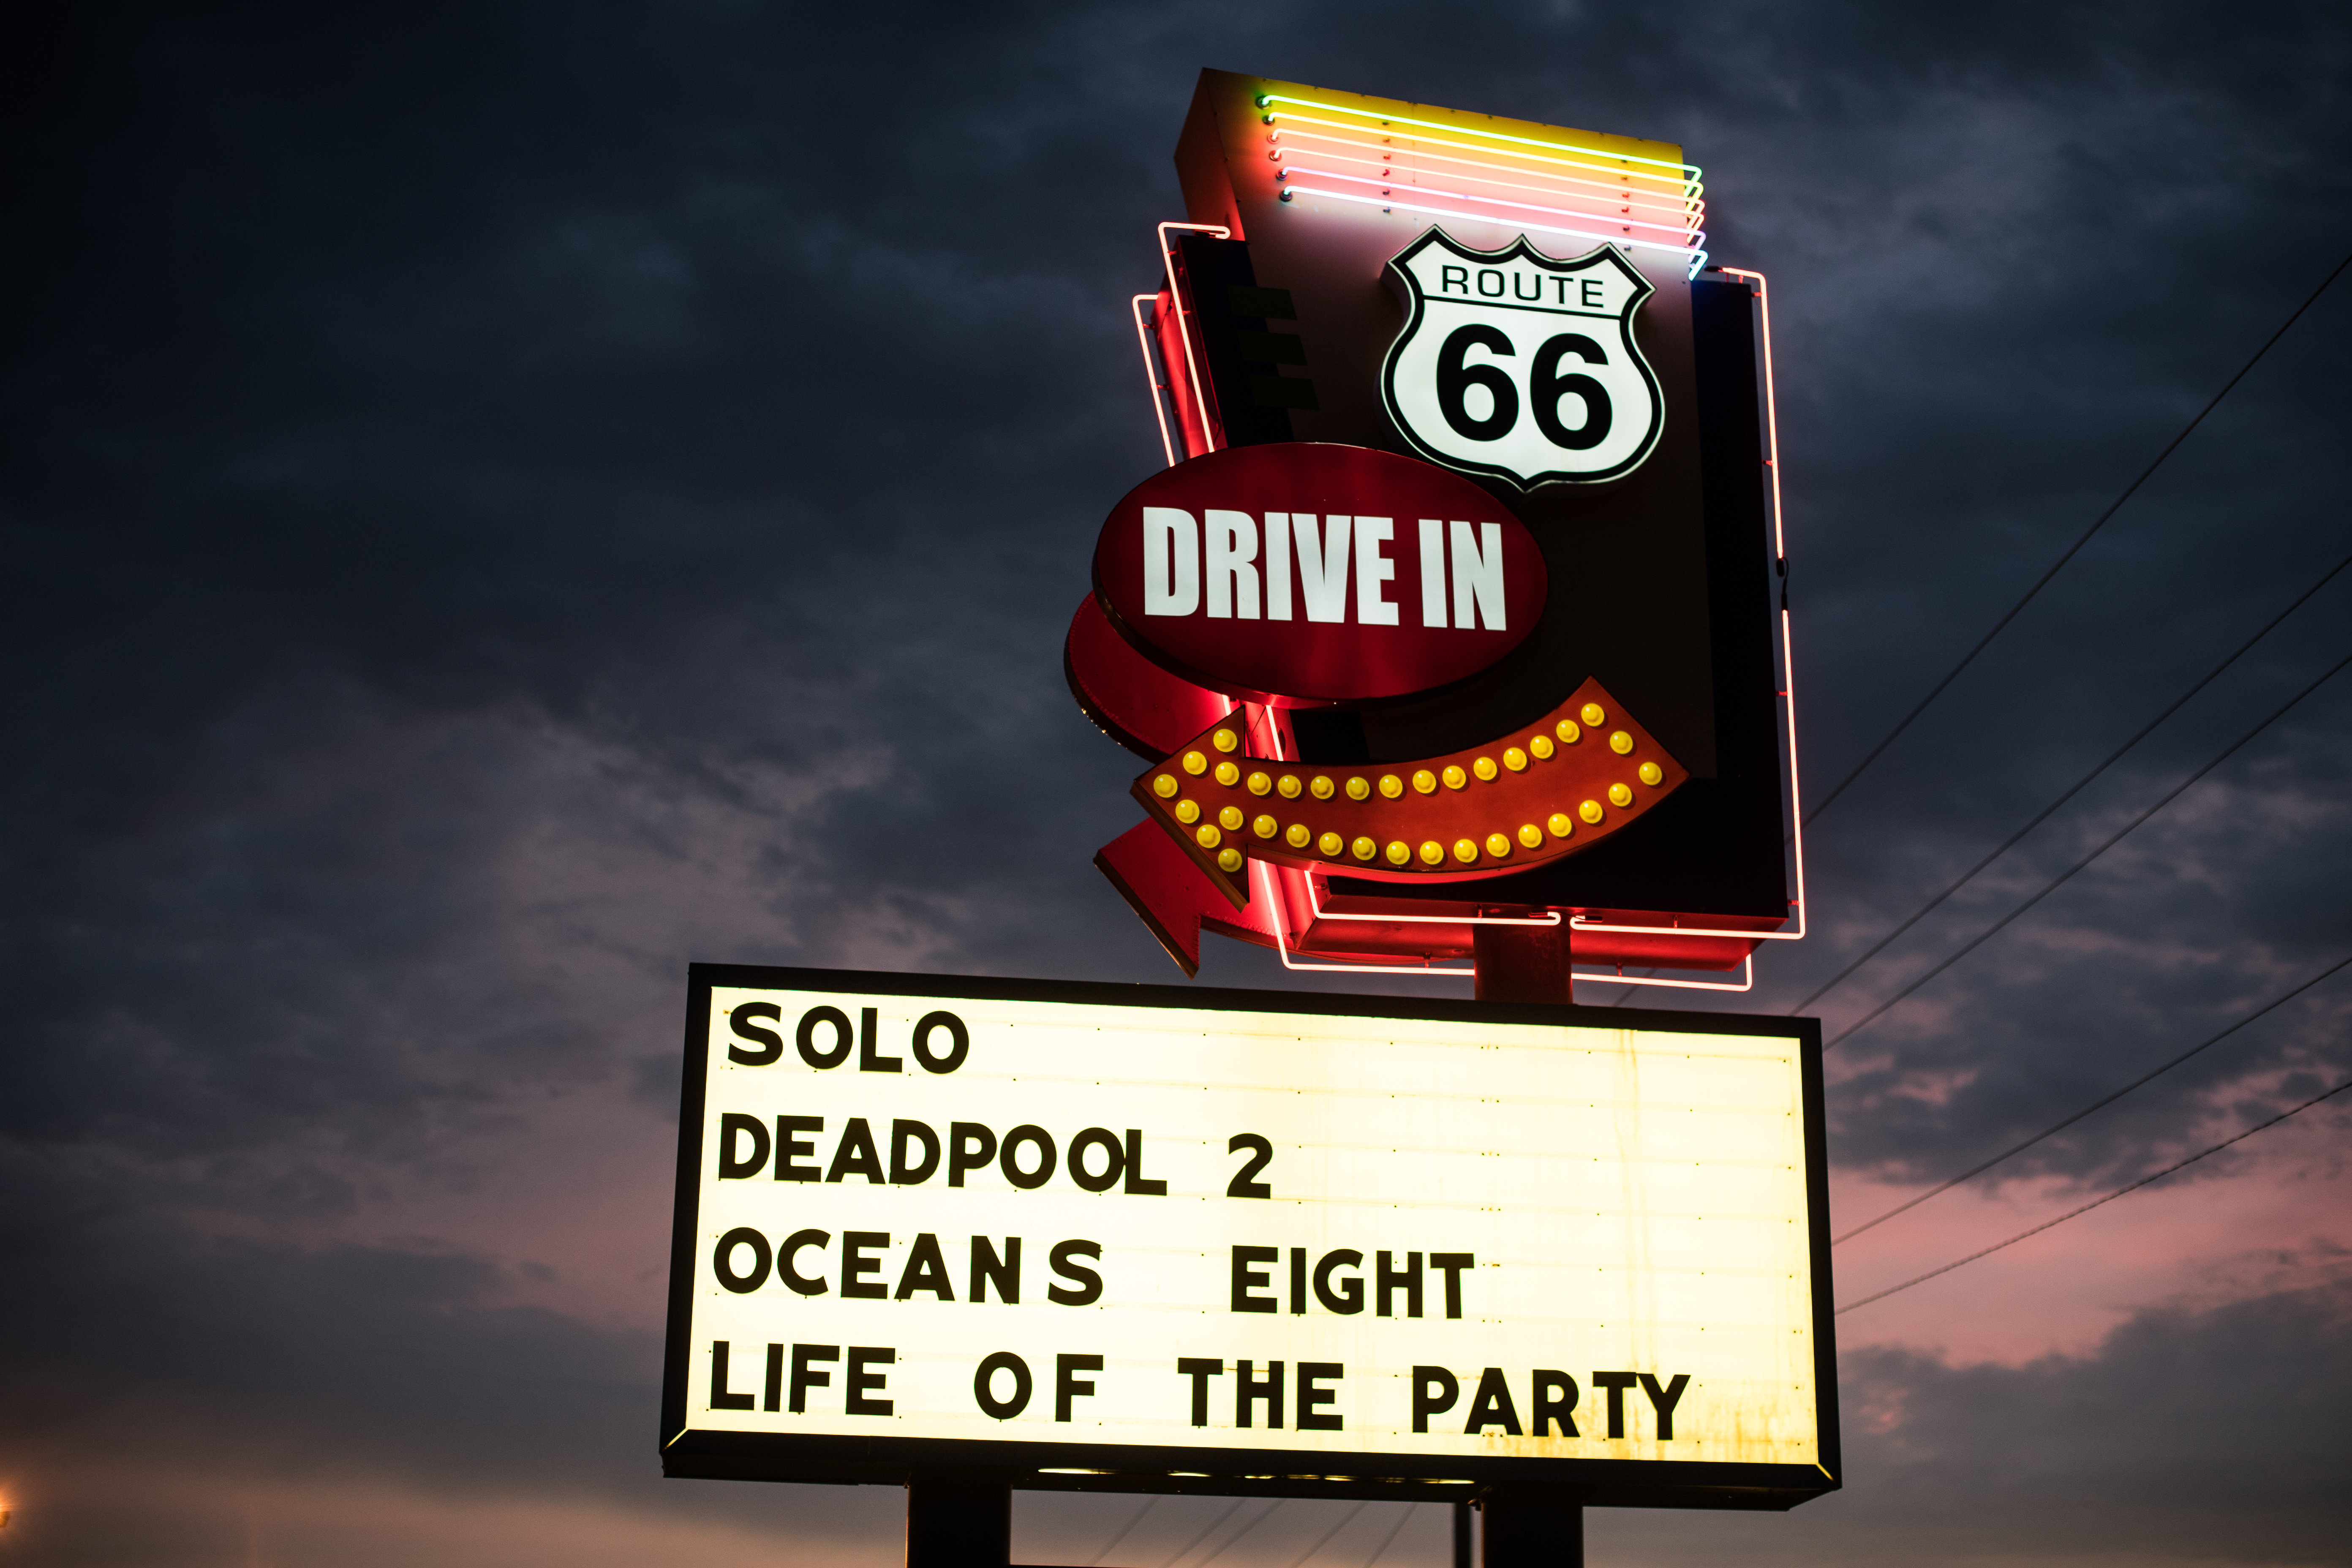 Route 66 Twin Drive-In